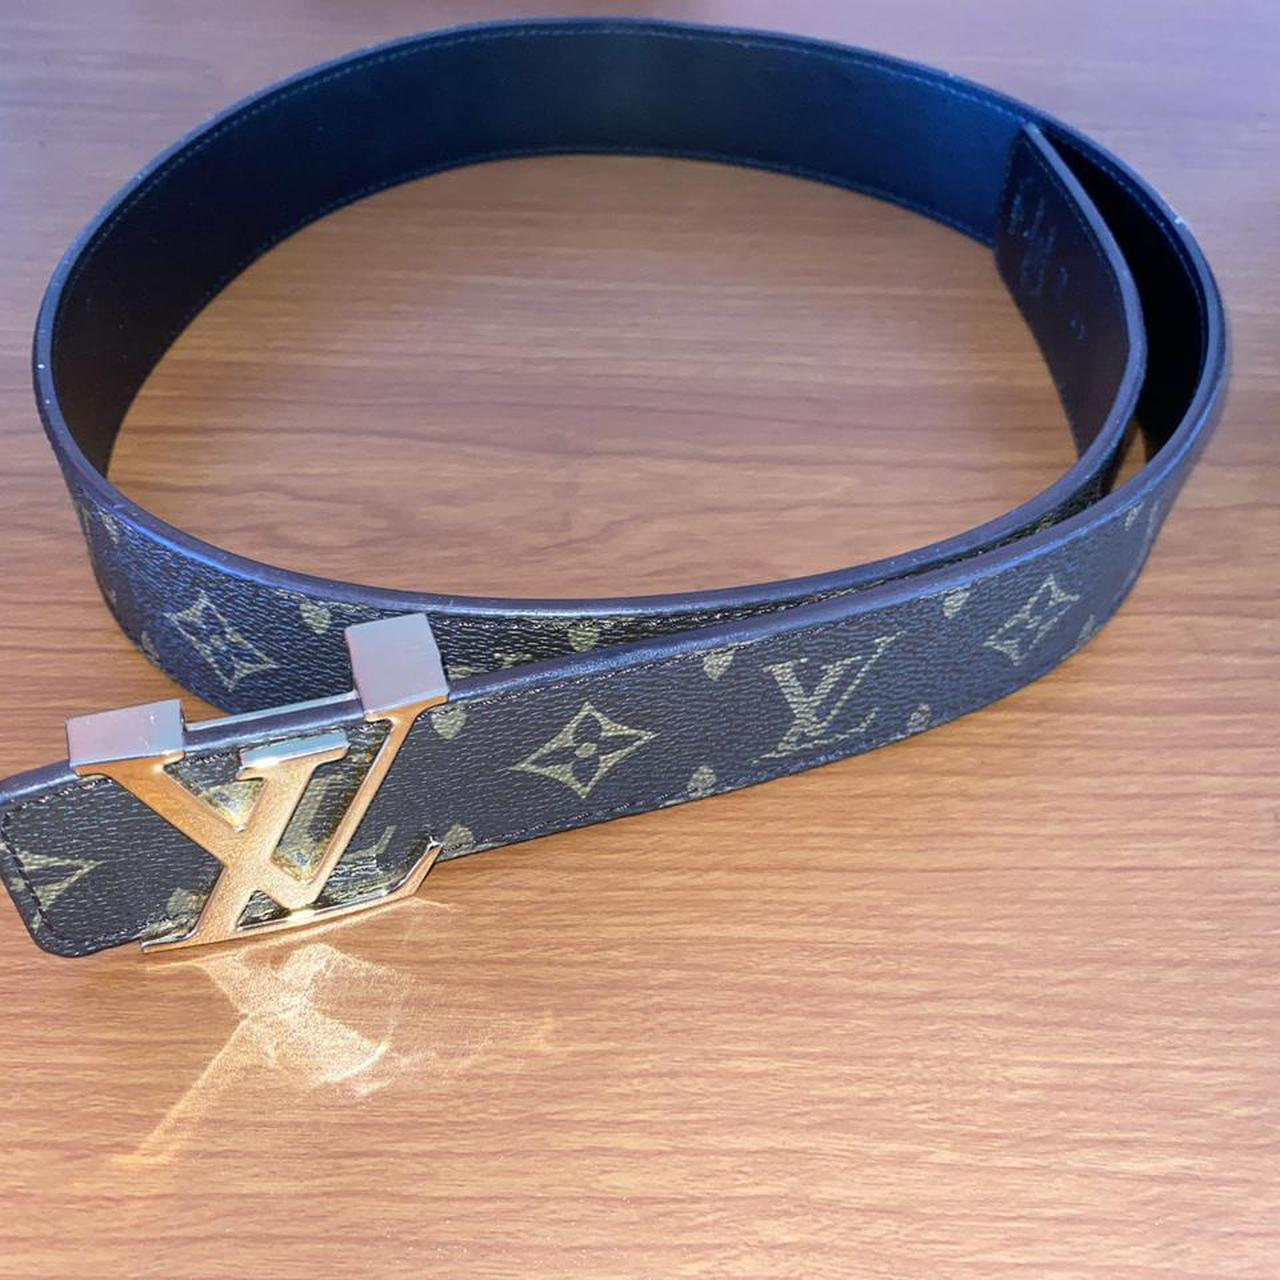 Product Image 1 - Louis Vuitton belt. In great